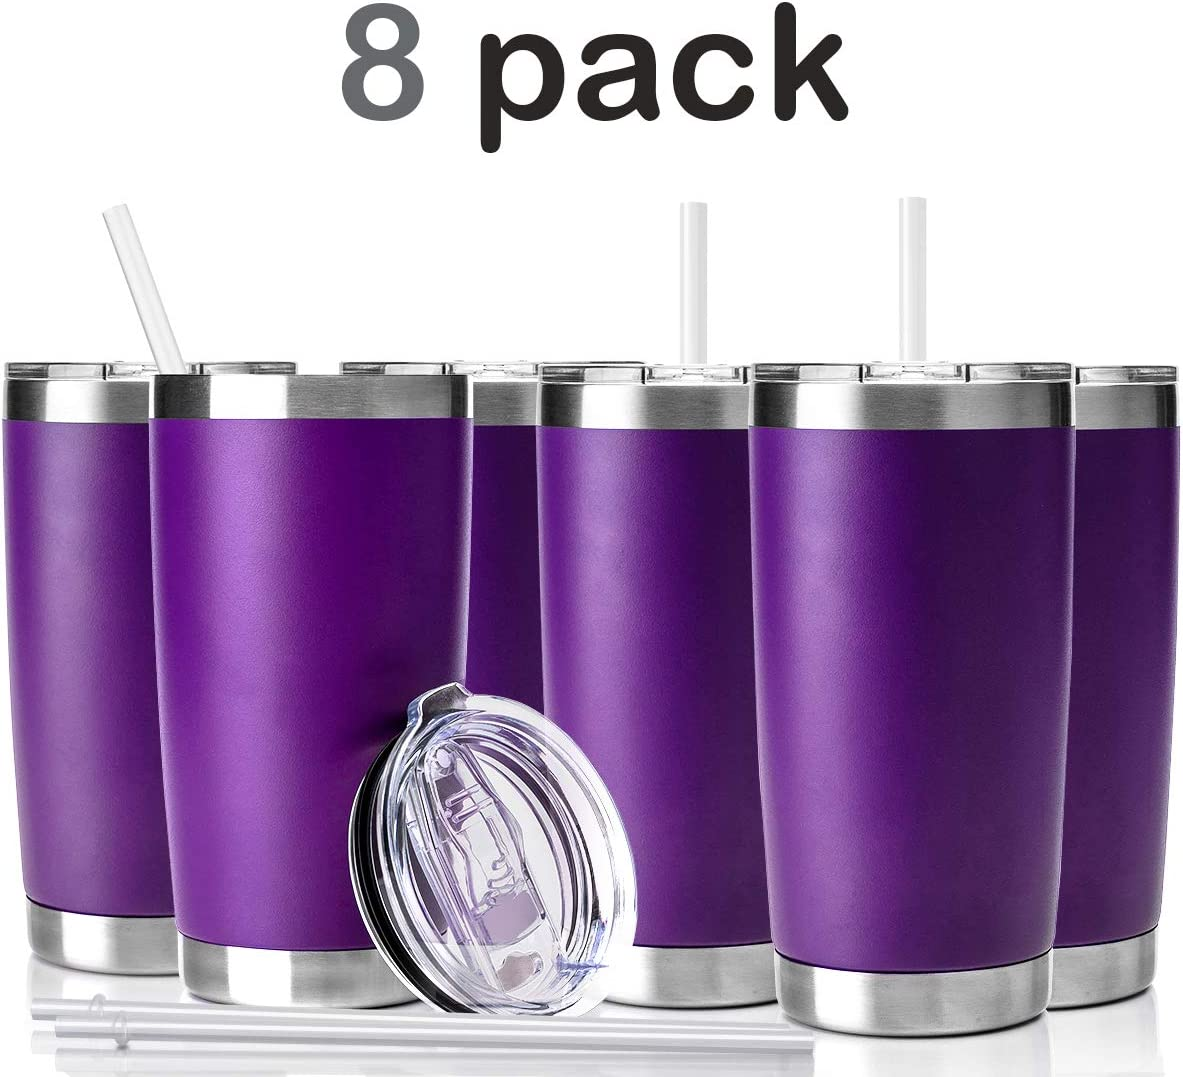 Civago 20oz Tumbler with Lid and Straw, Stainless Steel Vacuum Insulated Coffee Tumbler Cup, Double Wall Powder Coated Travel Mug (Purple, 8 Pack)